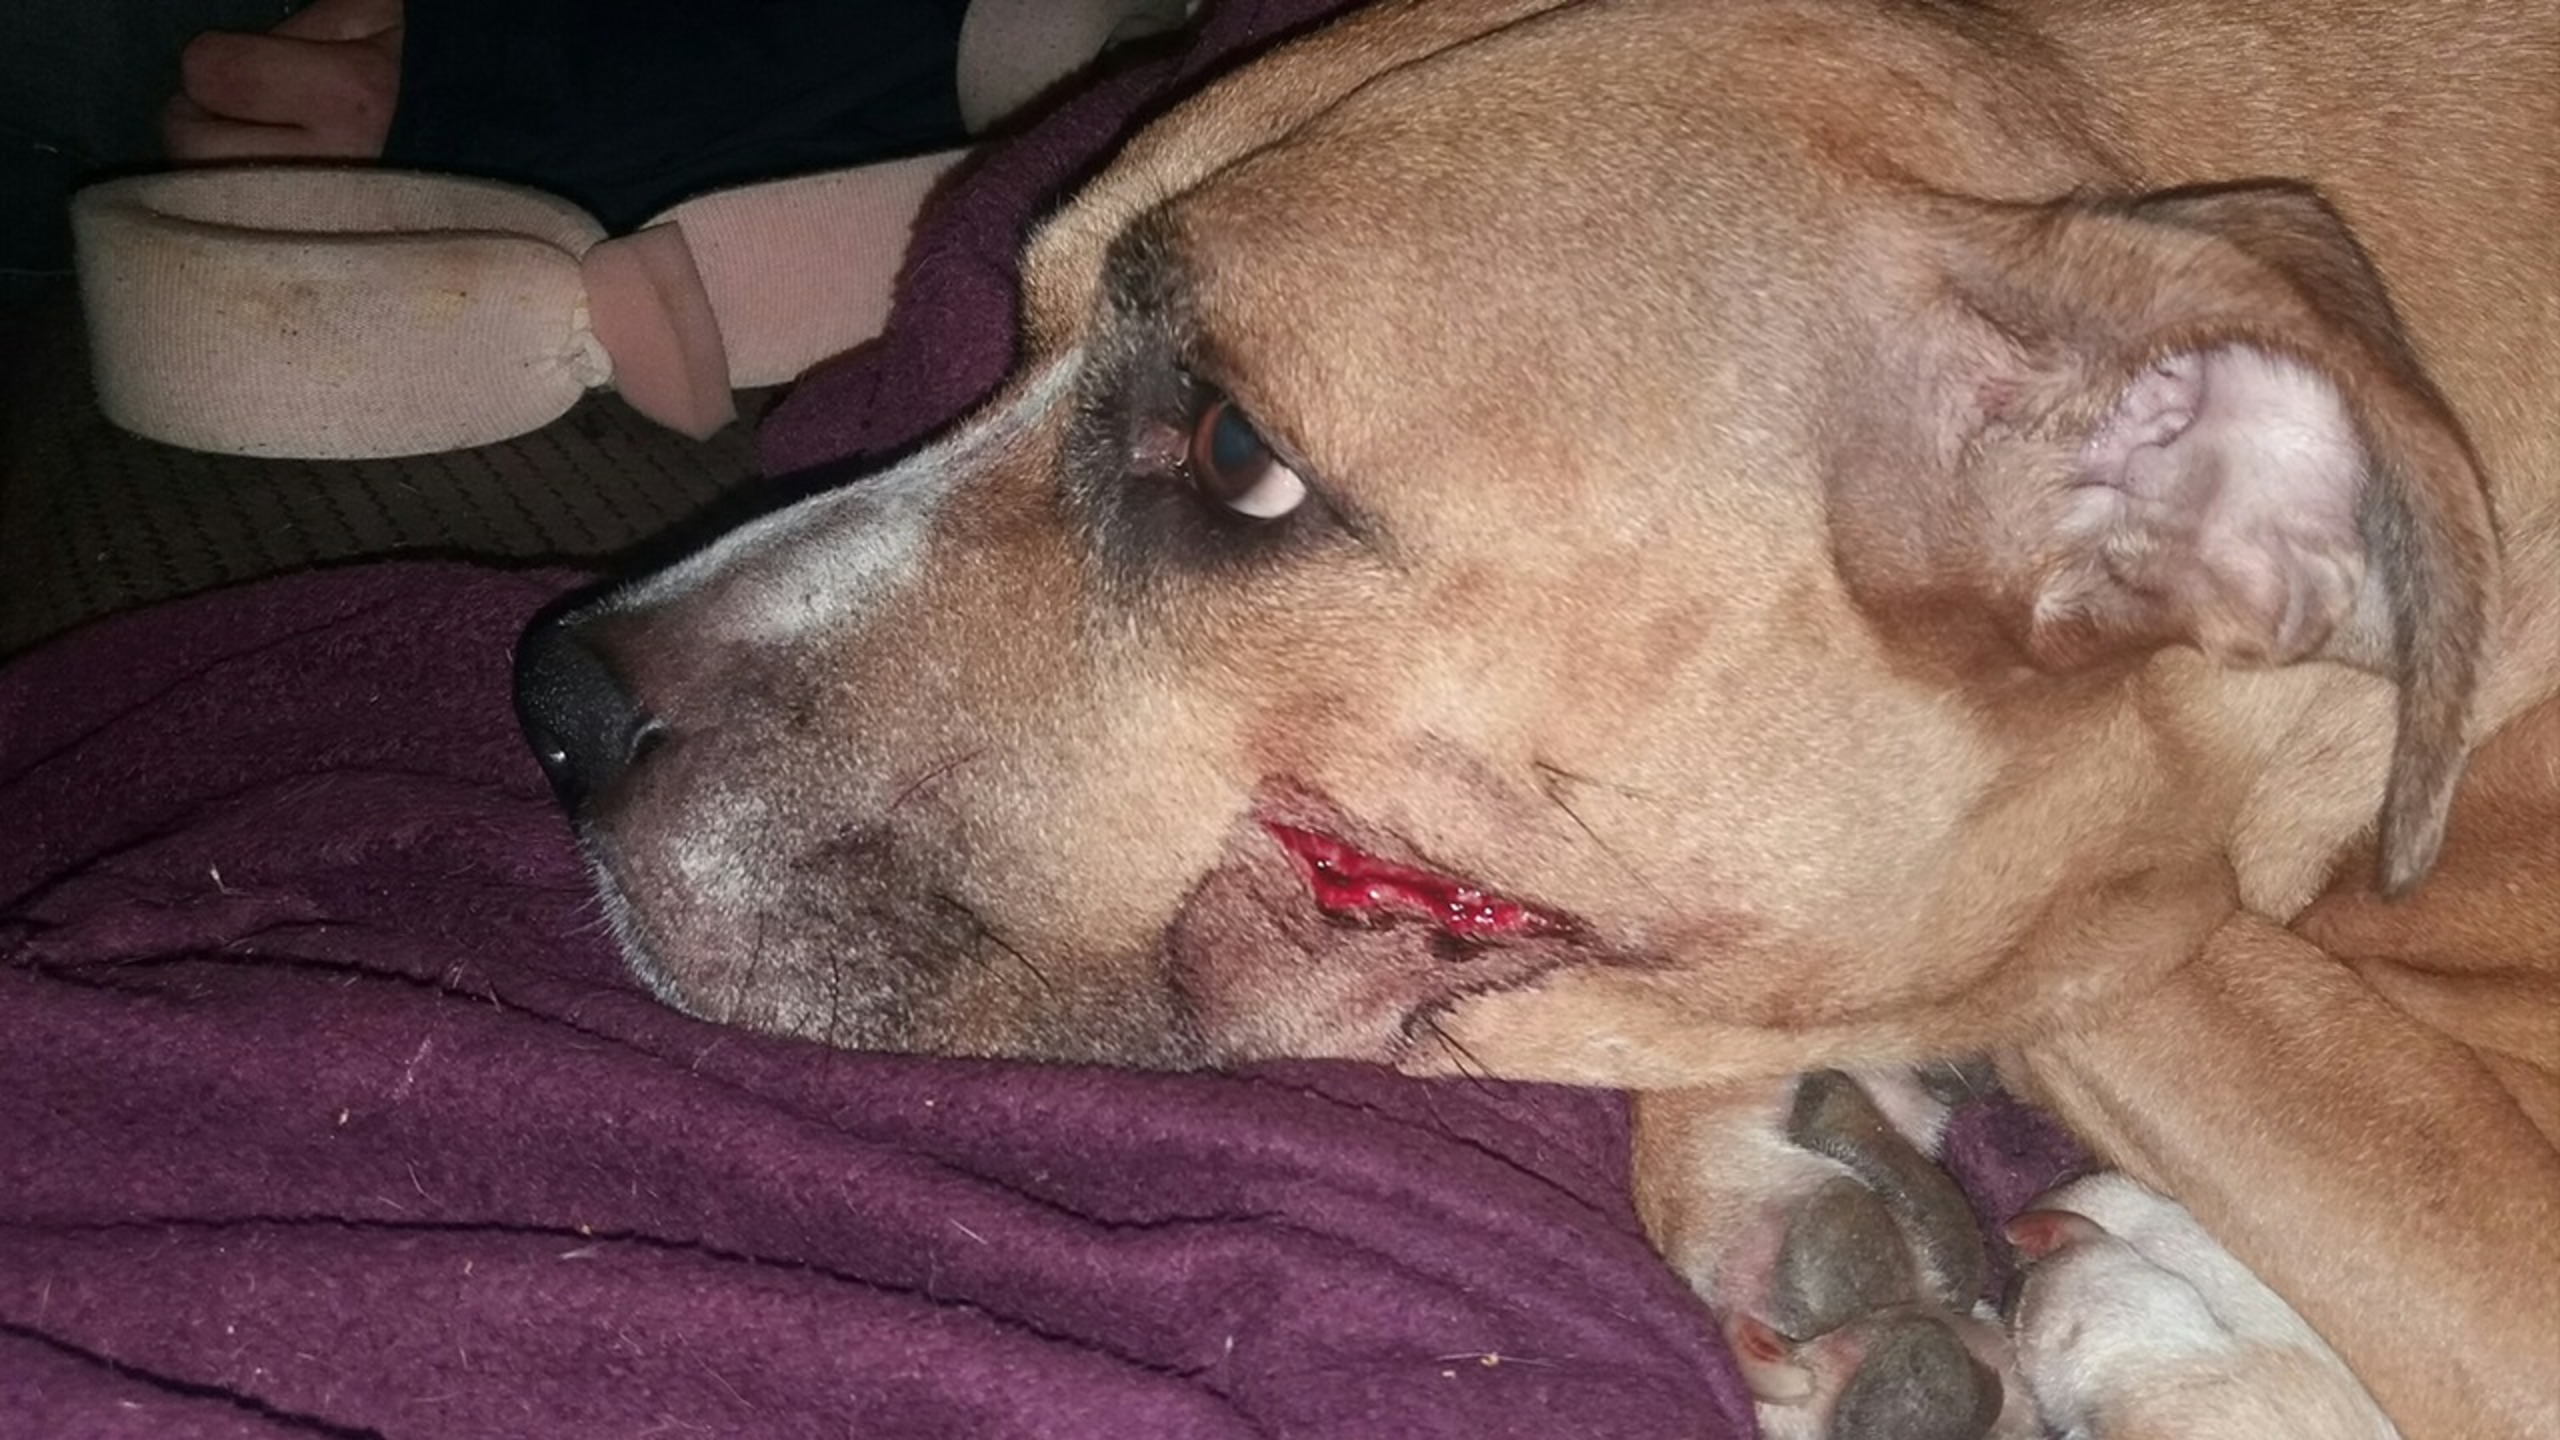 Machete-wielding robbers cut dog's face after she tried to stop them from stealing puppies